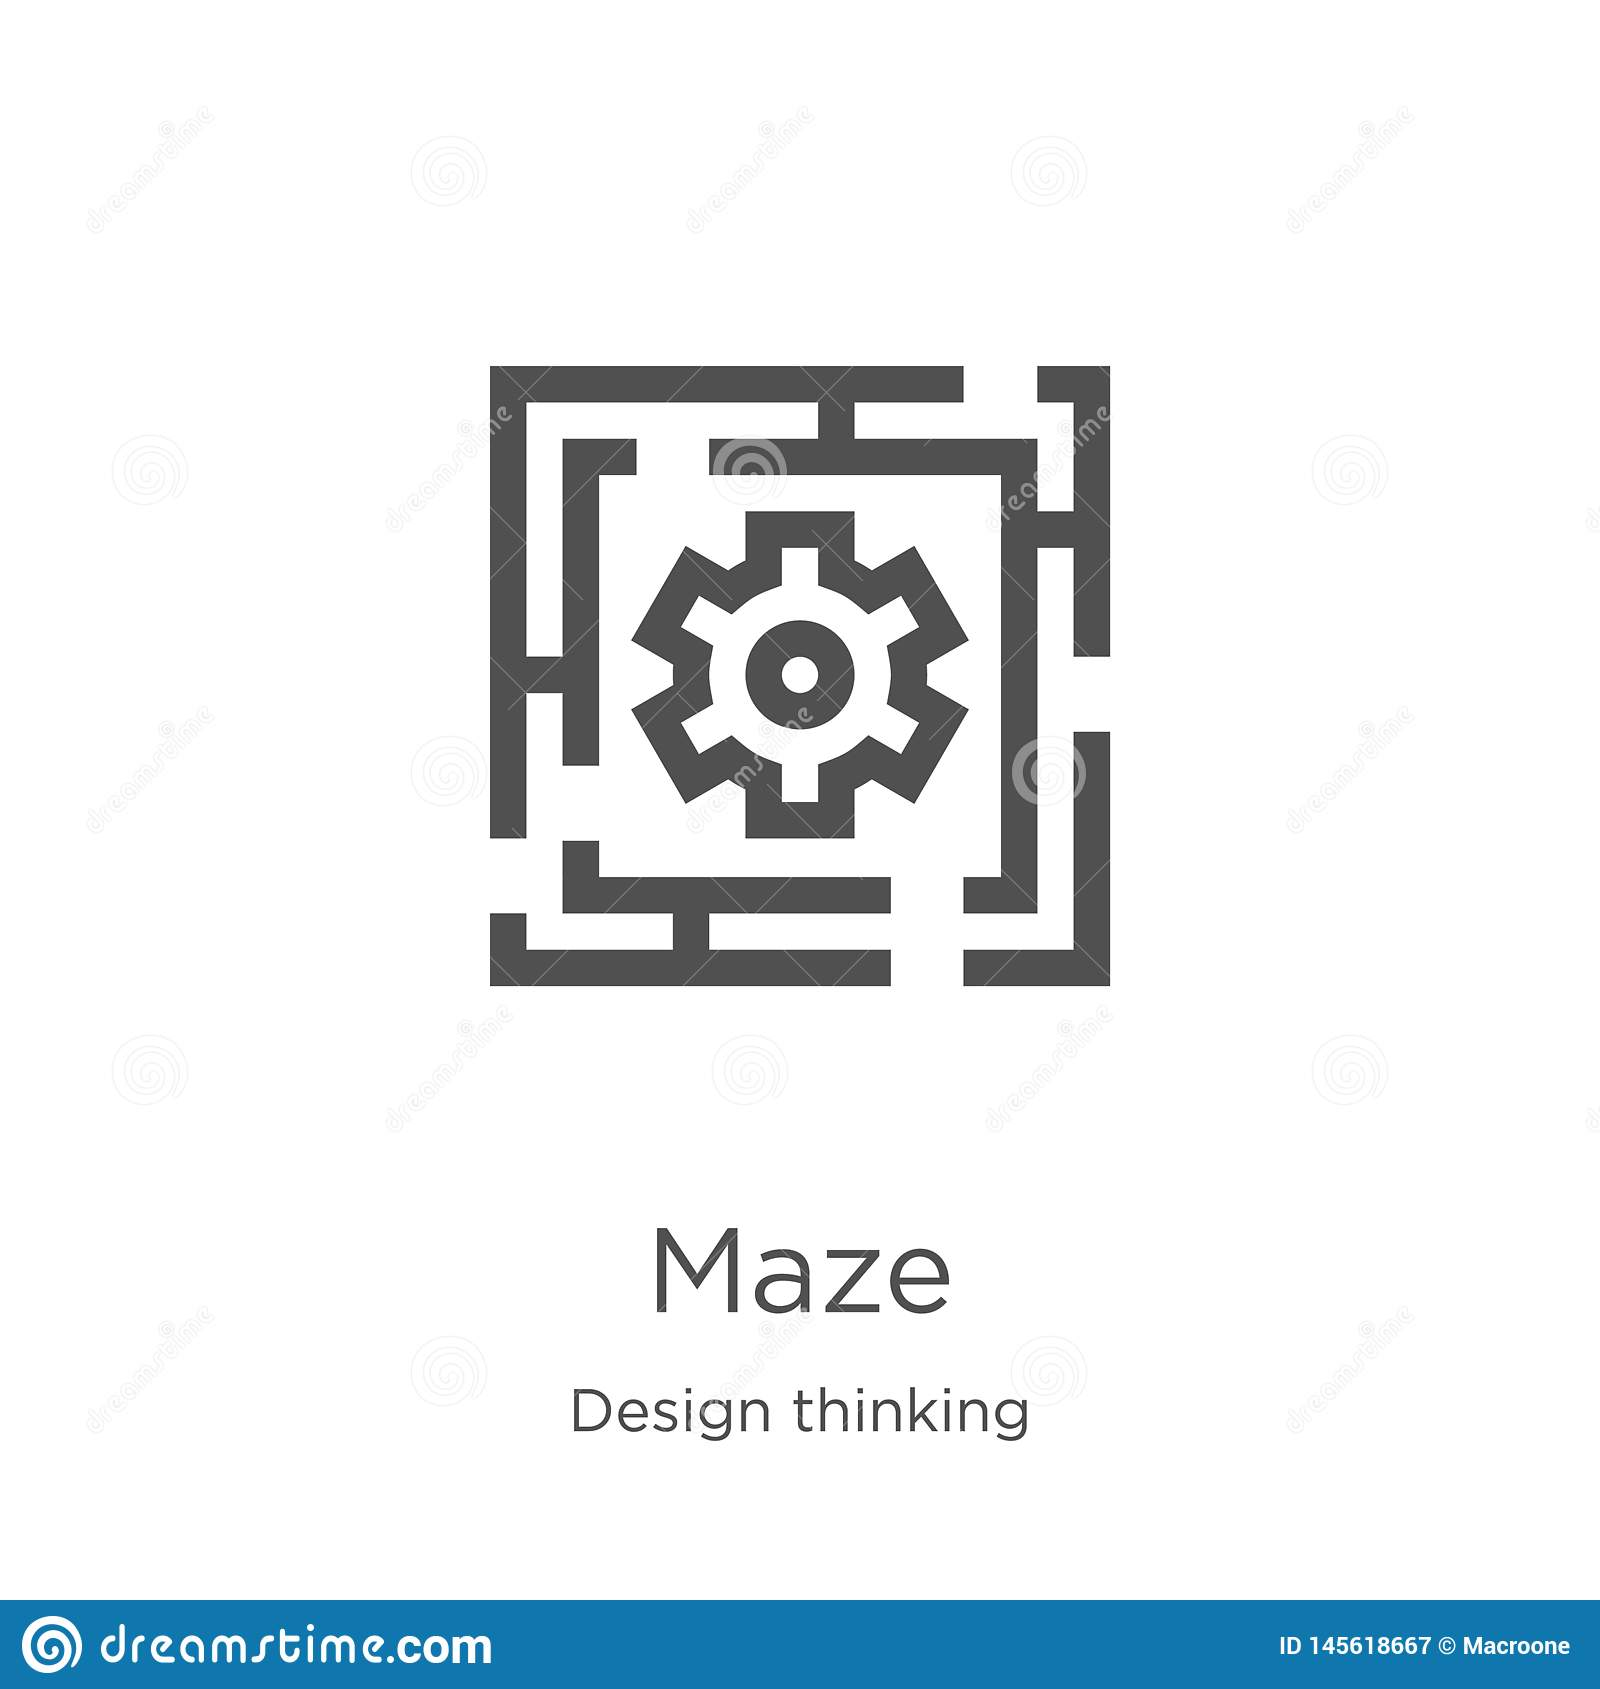 maze icon vector from design thinking collection. Thin line maze outline icon vector illustration. Outline, thin line maze icon